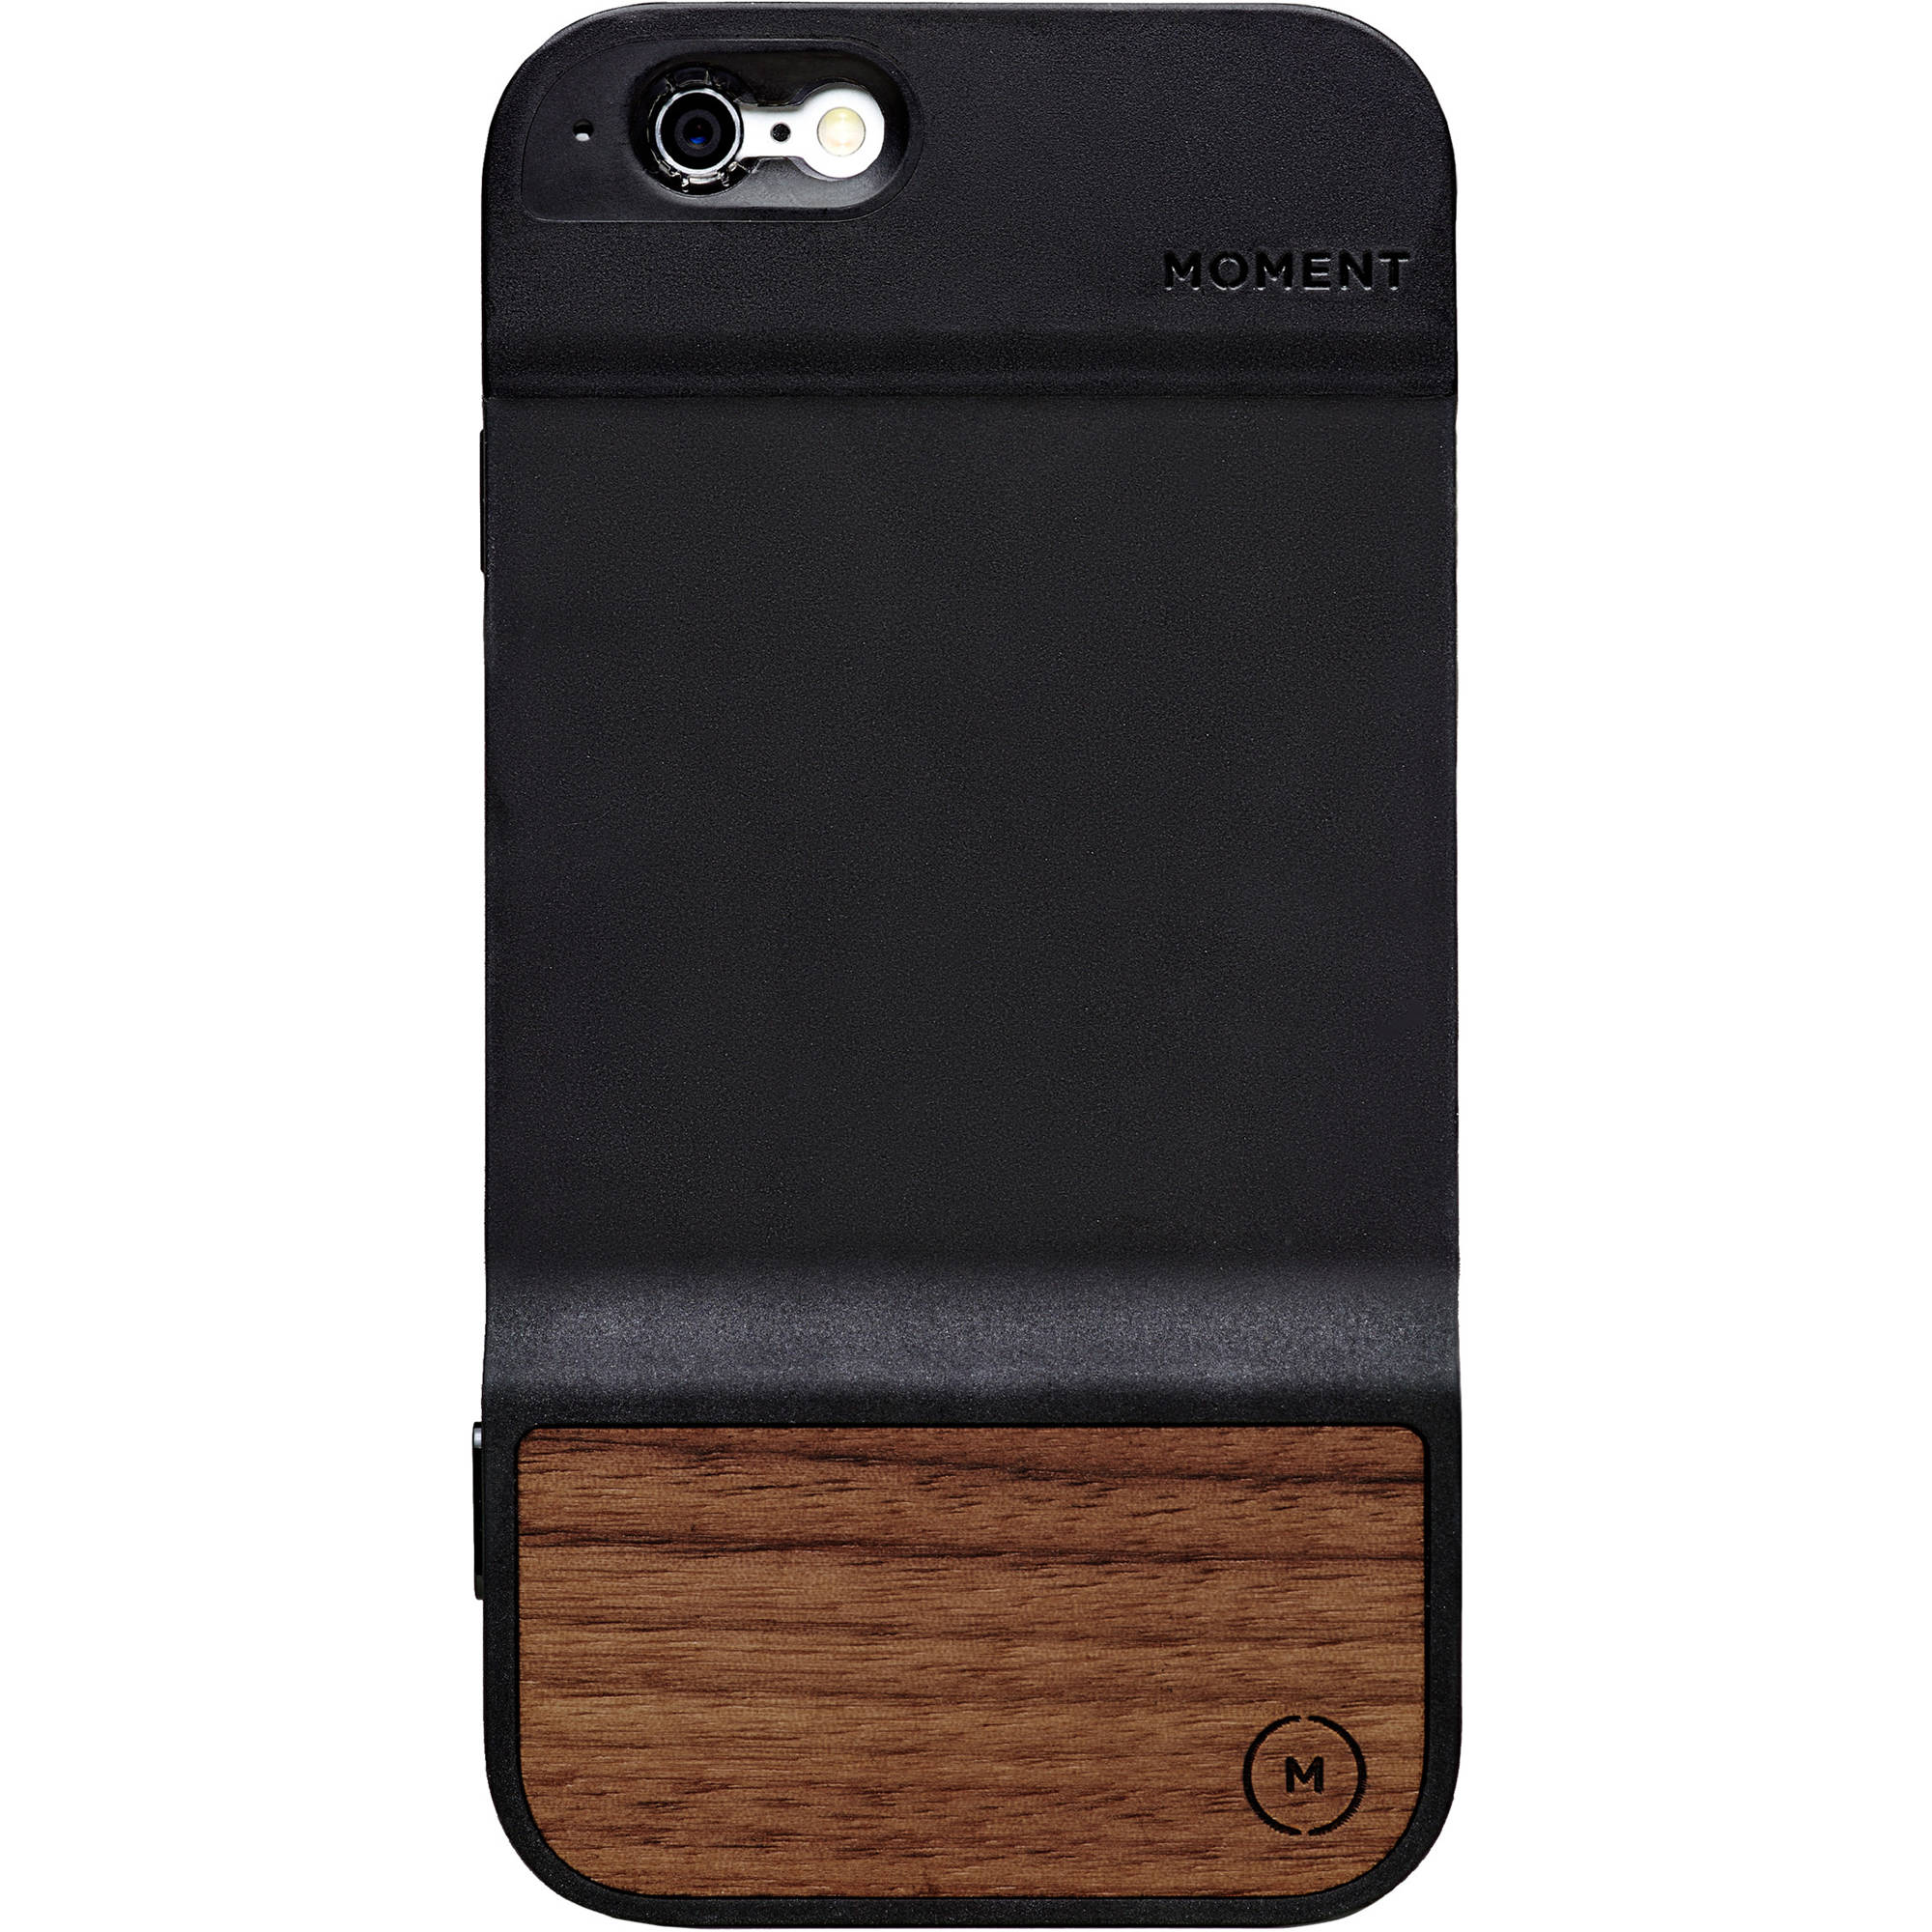 moment walnut case for iphone 6 6s 300 007 b h photo video. Black Bedroom Furniture Sets. Home Design Ideas